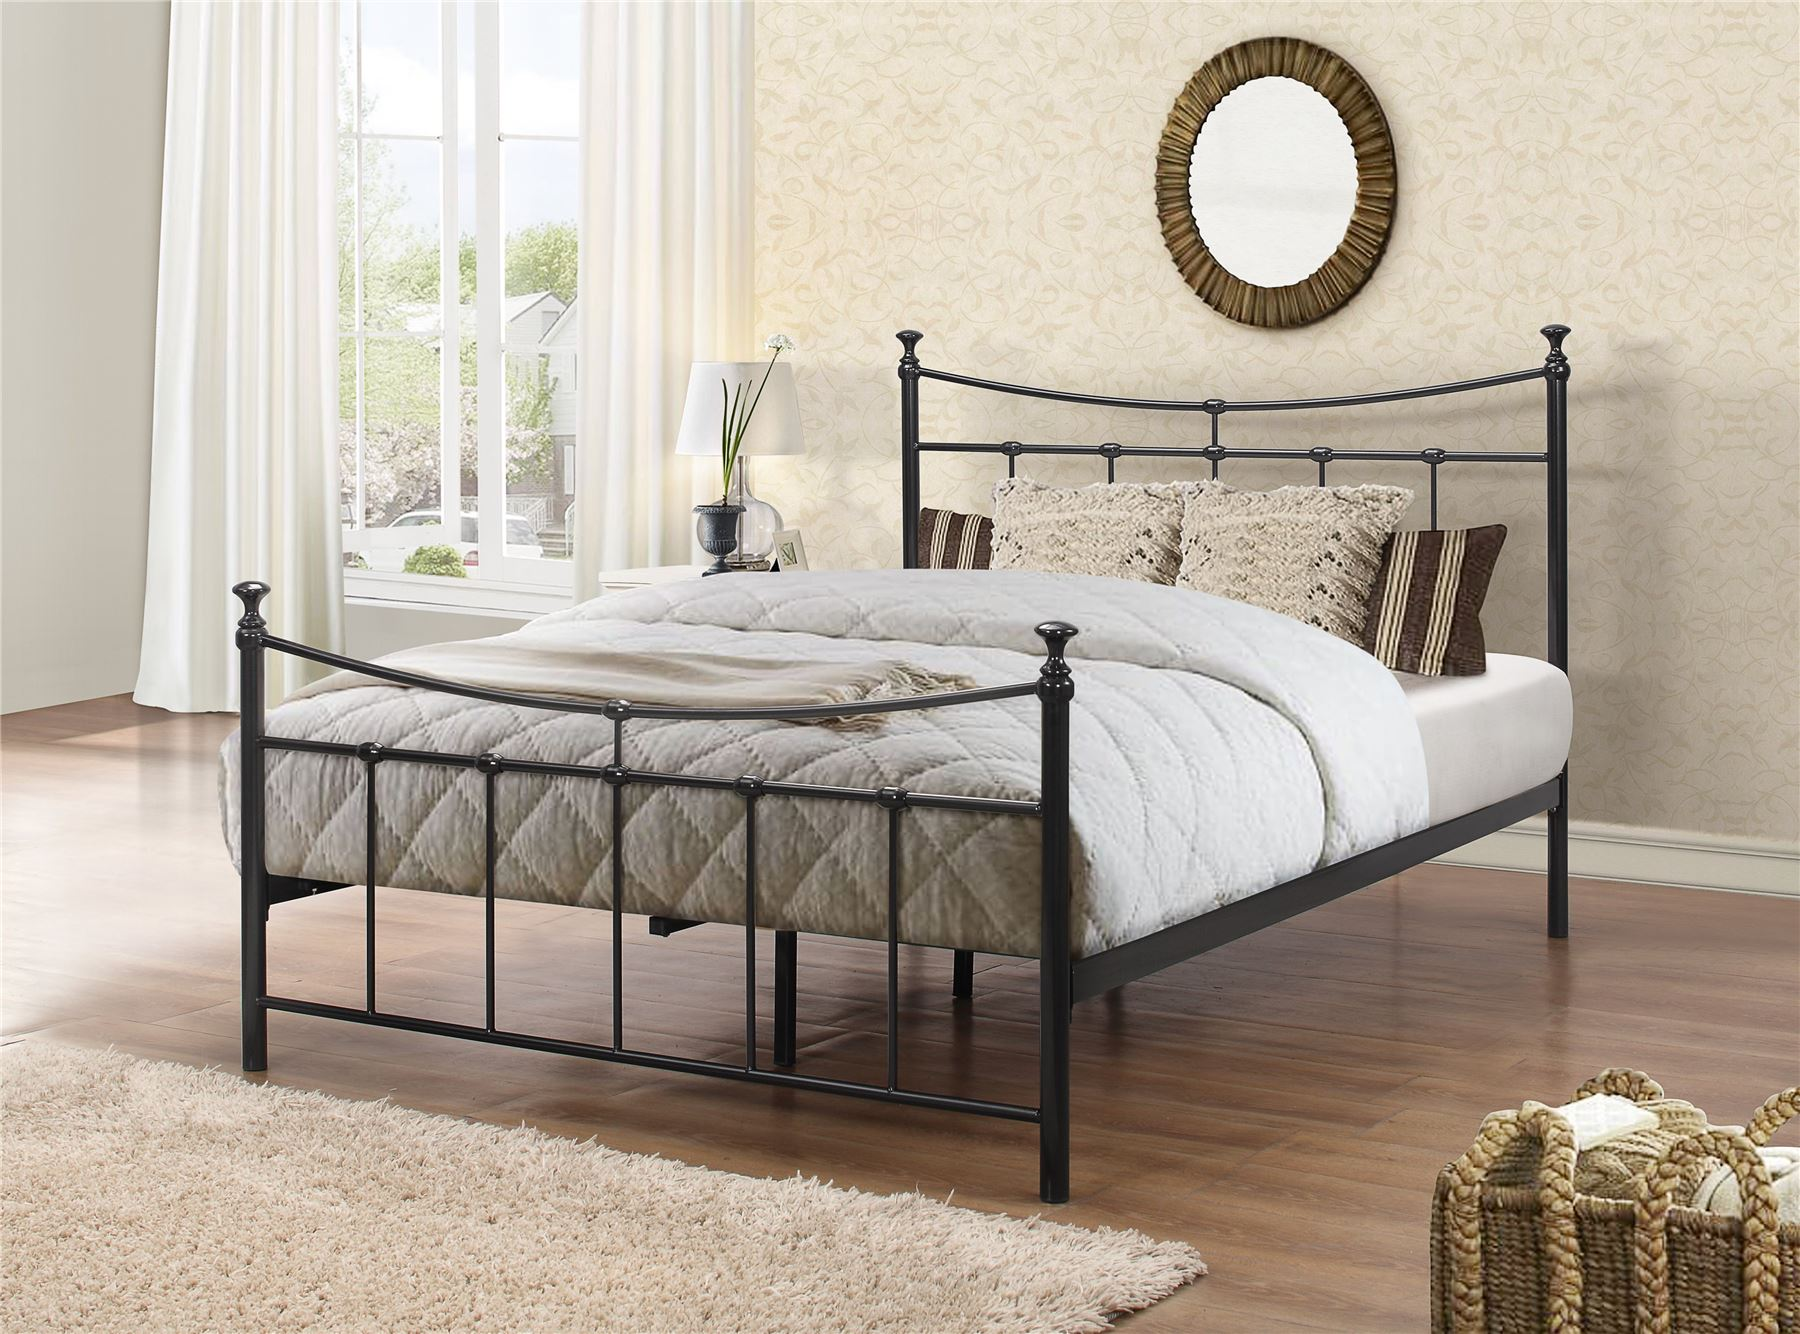 Emily 135cm 4FT6 Double black metal Bed Frame Bedstead decorative finials